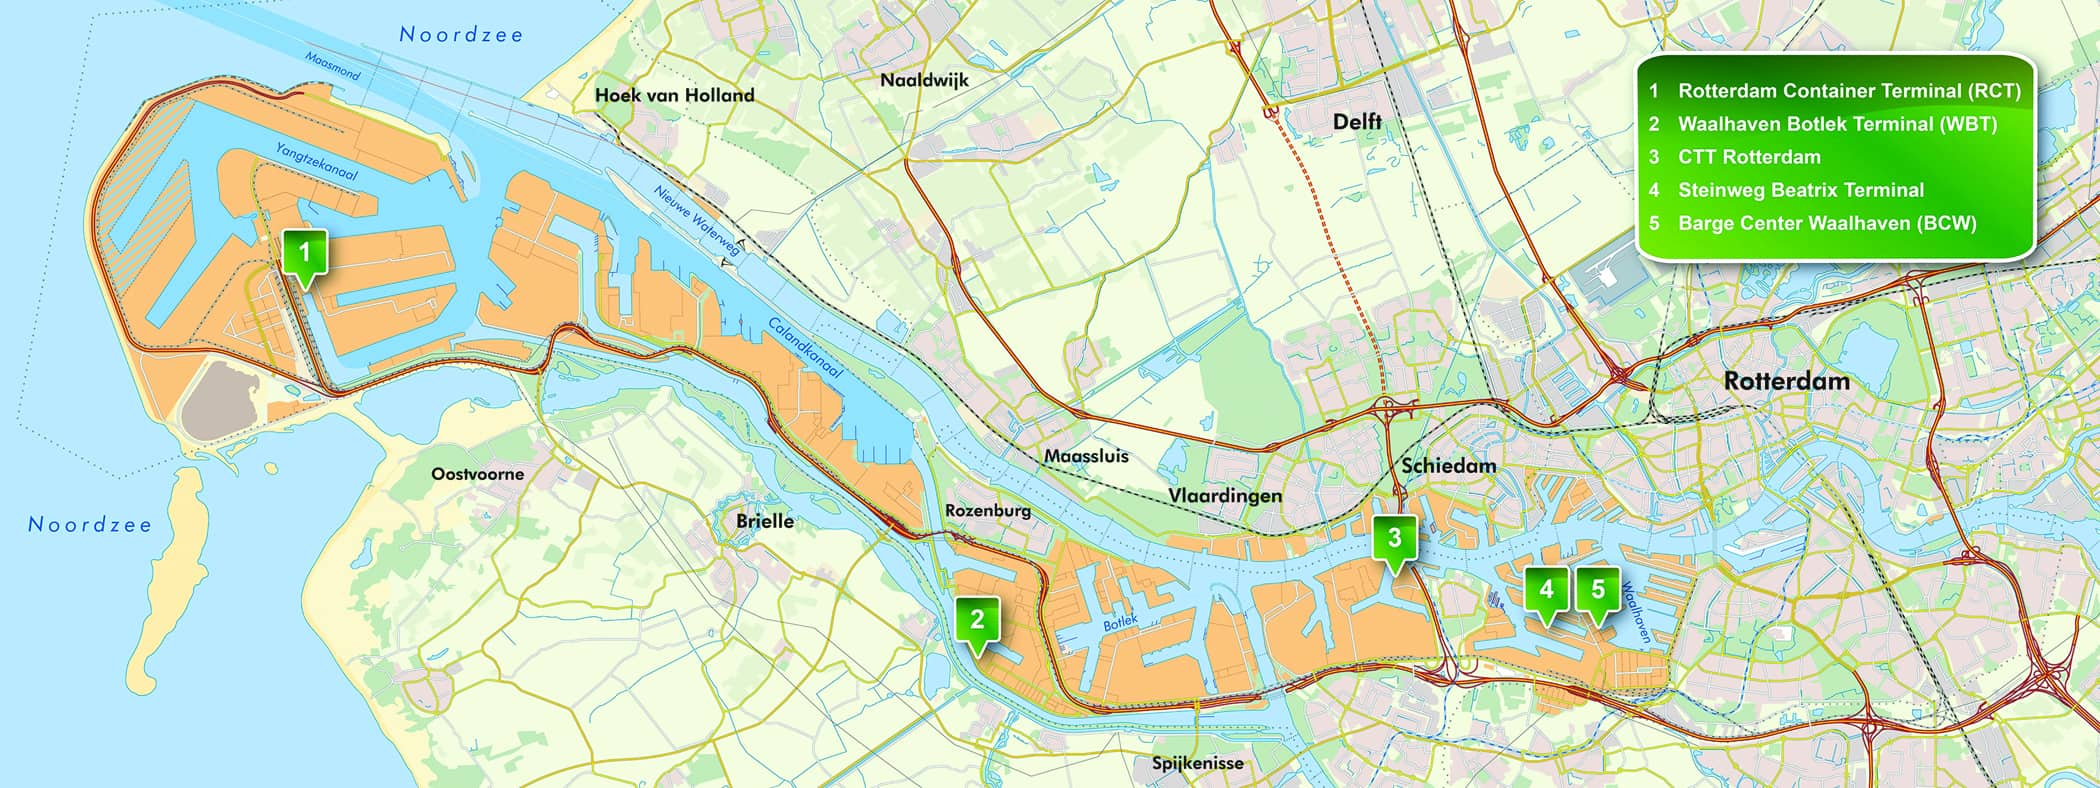 Rotterdam port is now covered by InlandLinks